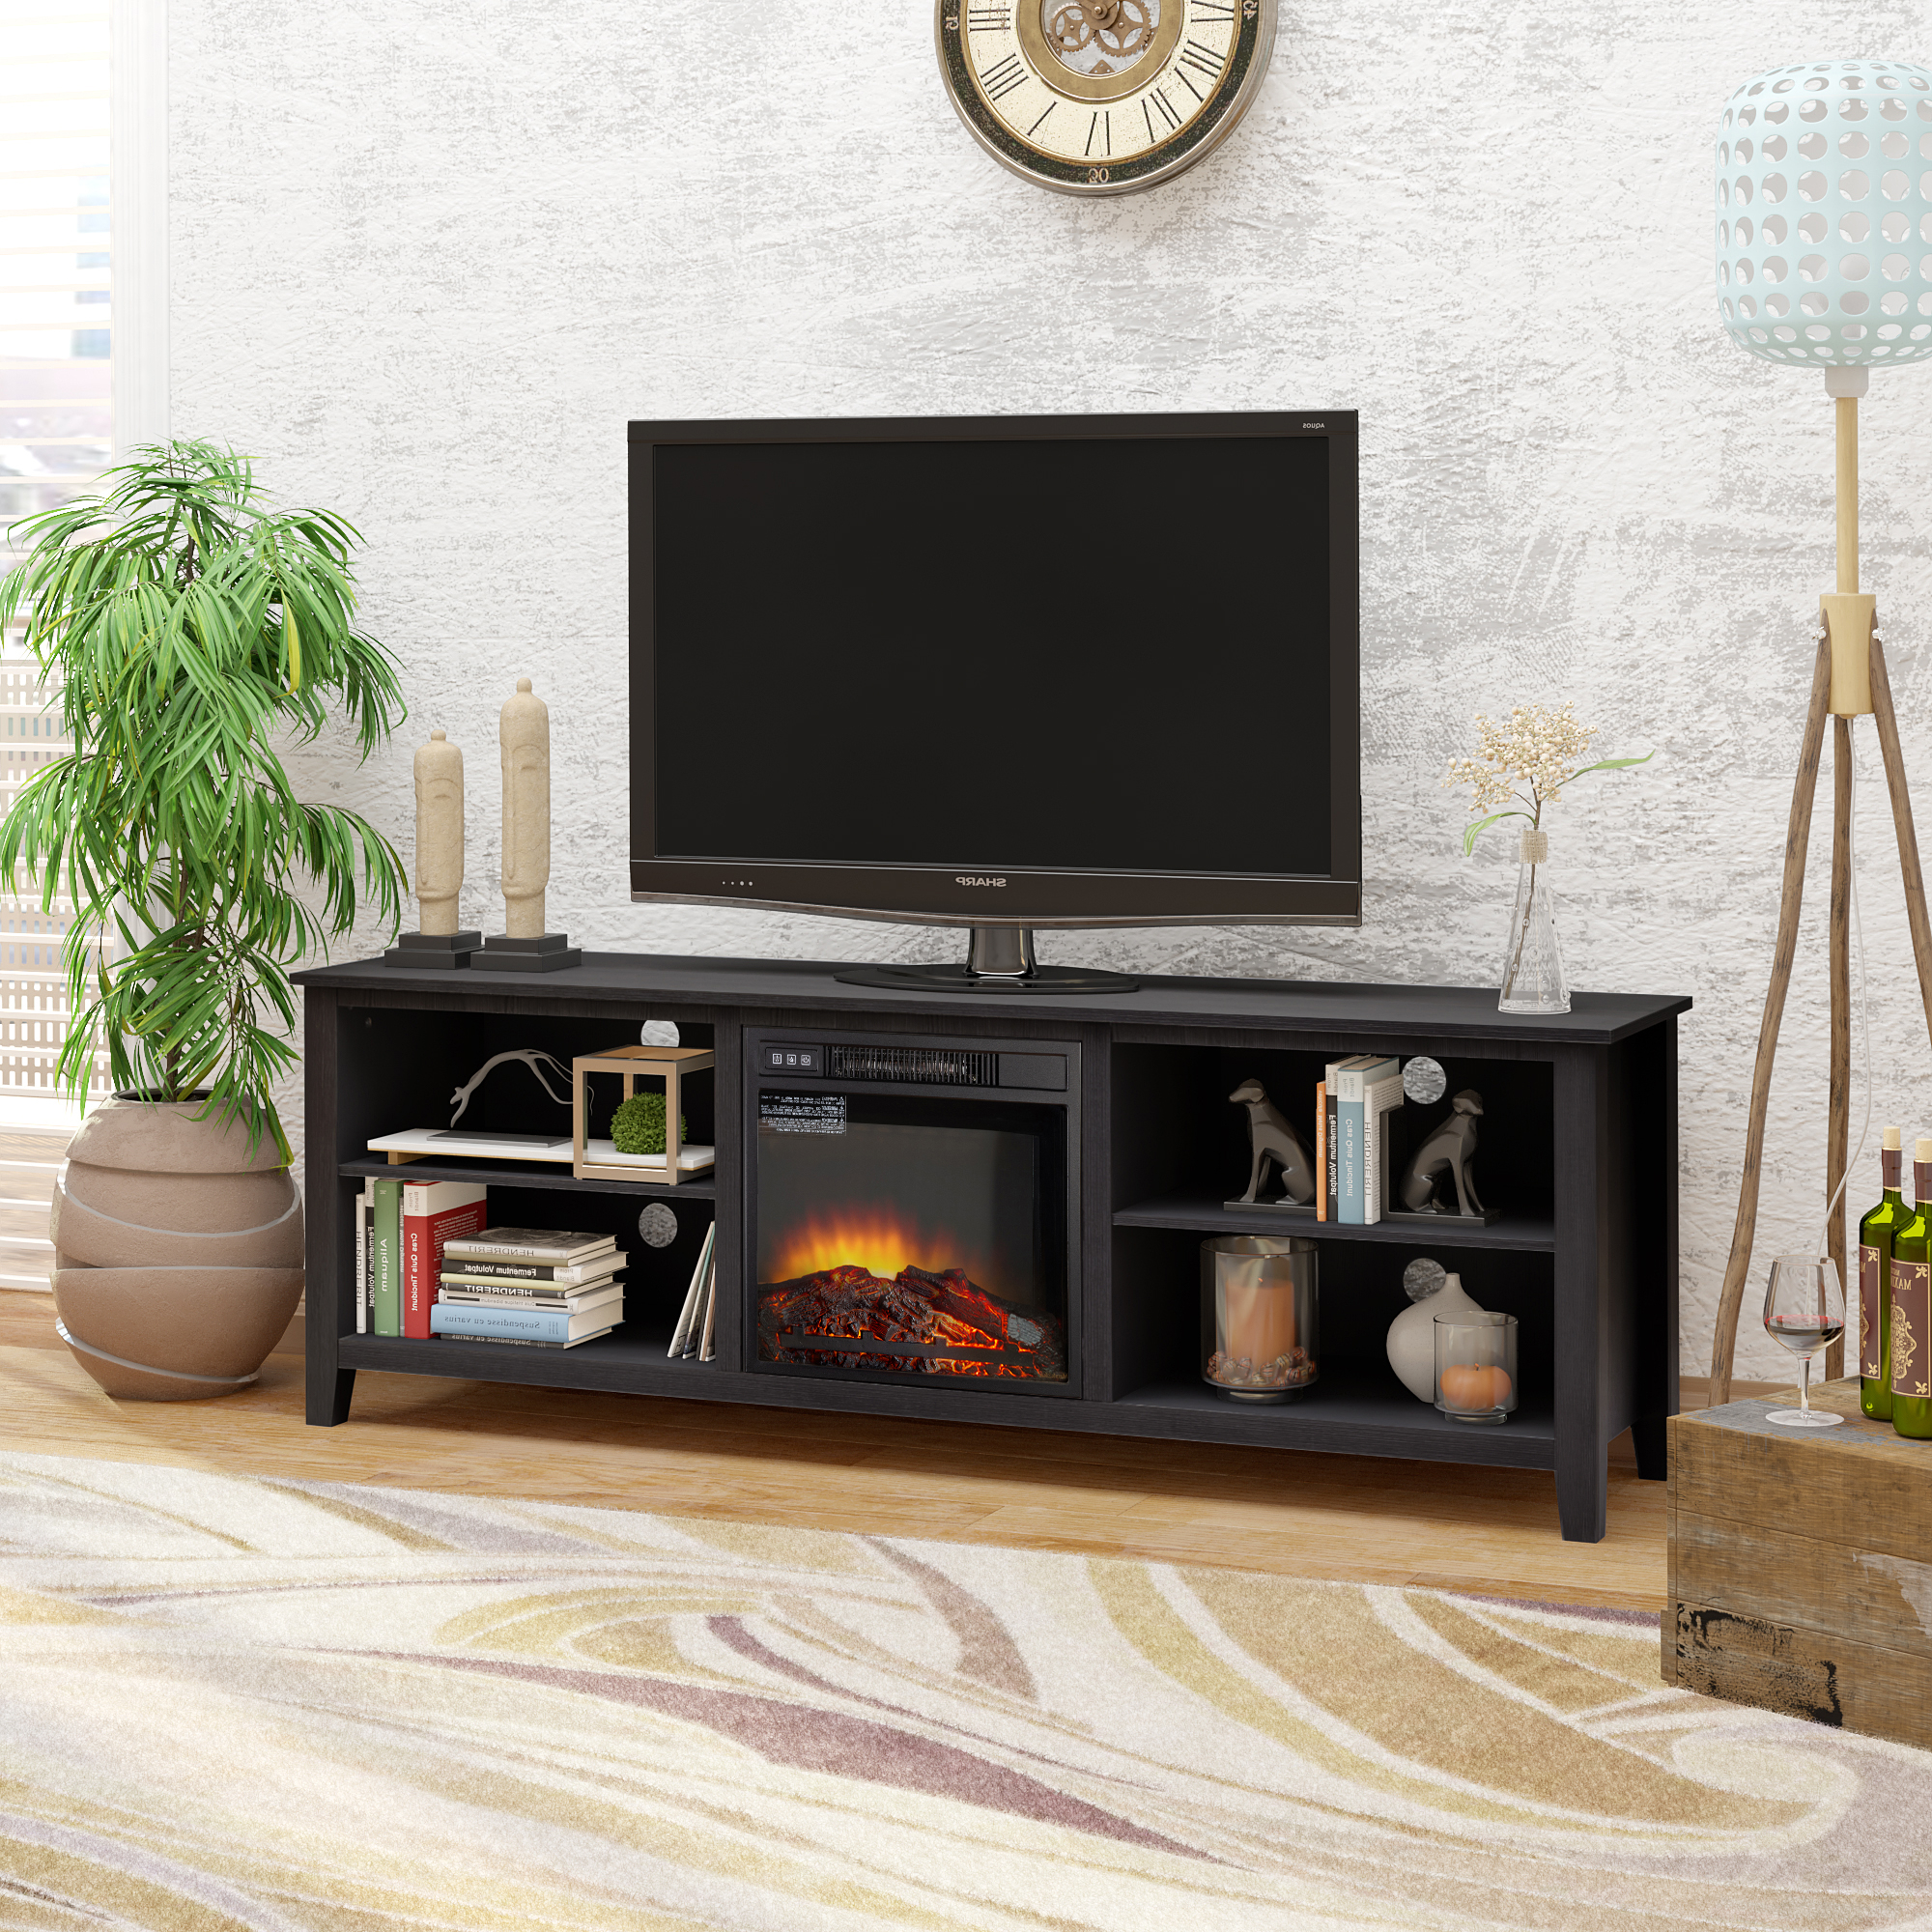 """70"""" Tv Stand Fireplace Media Console For Tvs Up To 80 In Latest Lorraine Tv Stands For Tvs Up To 70"""" (View 1 of 25)"""